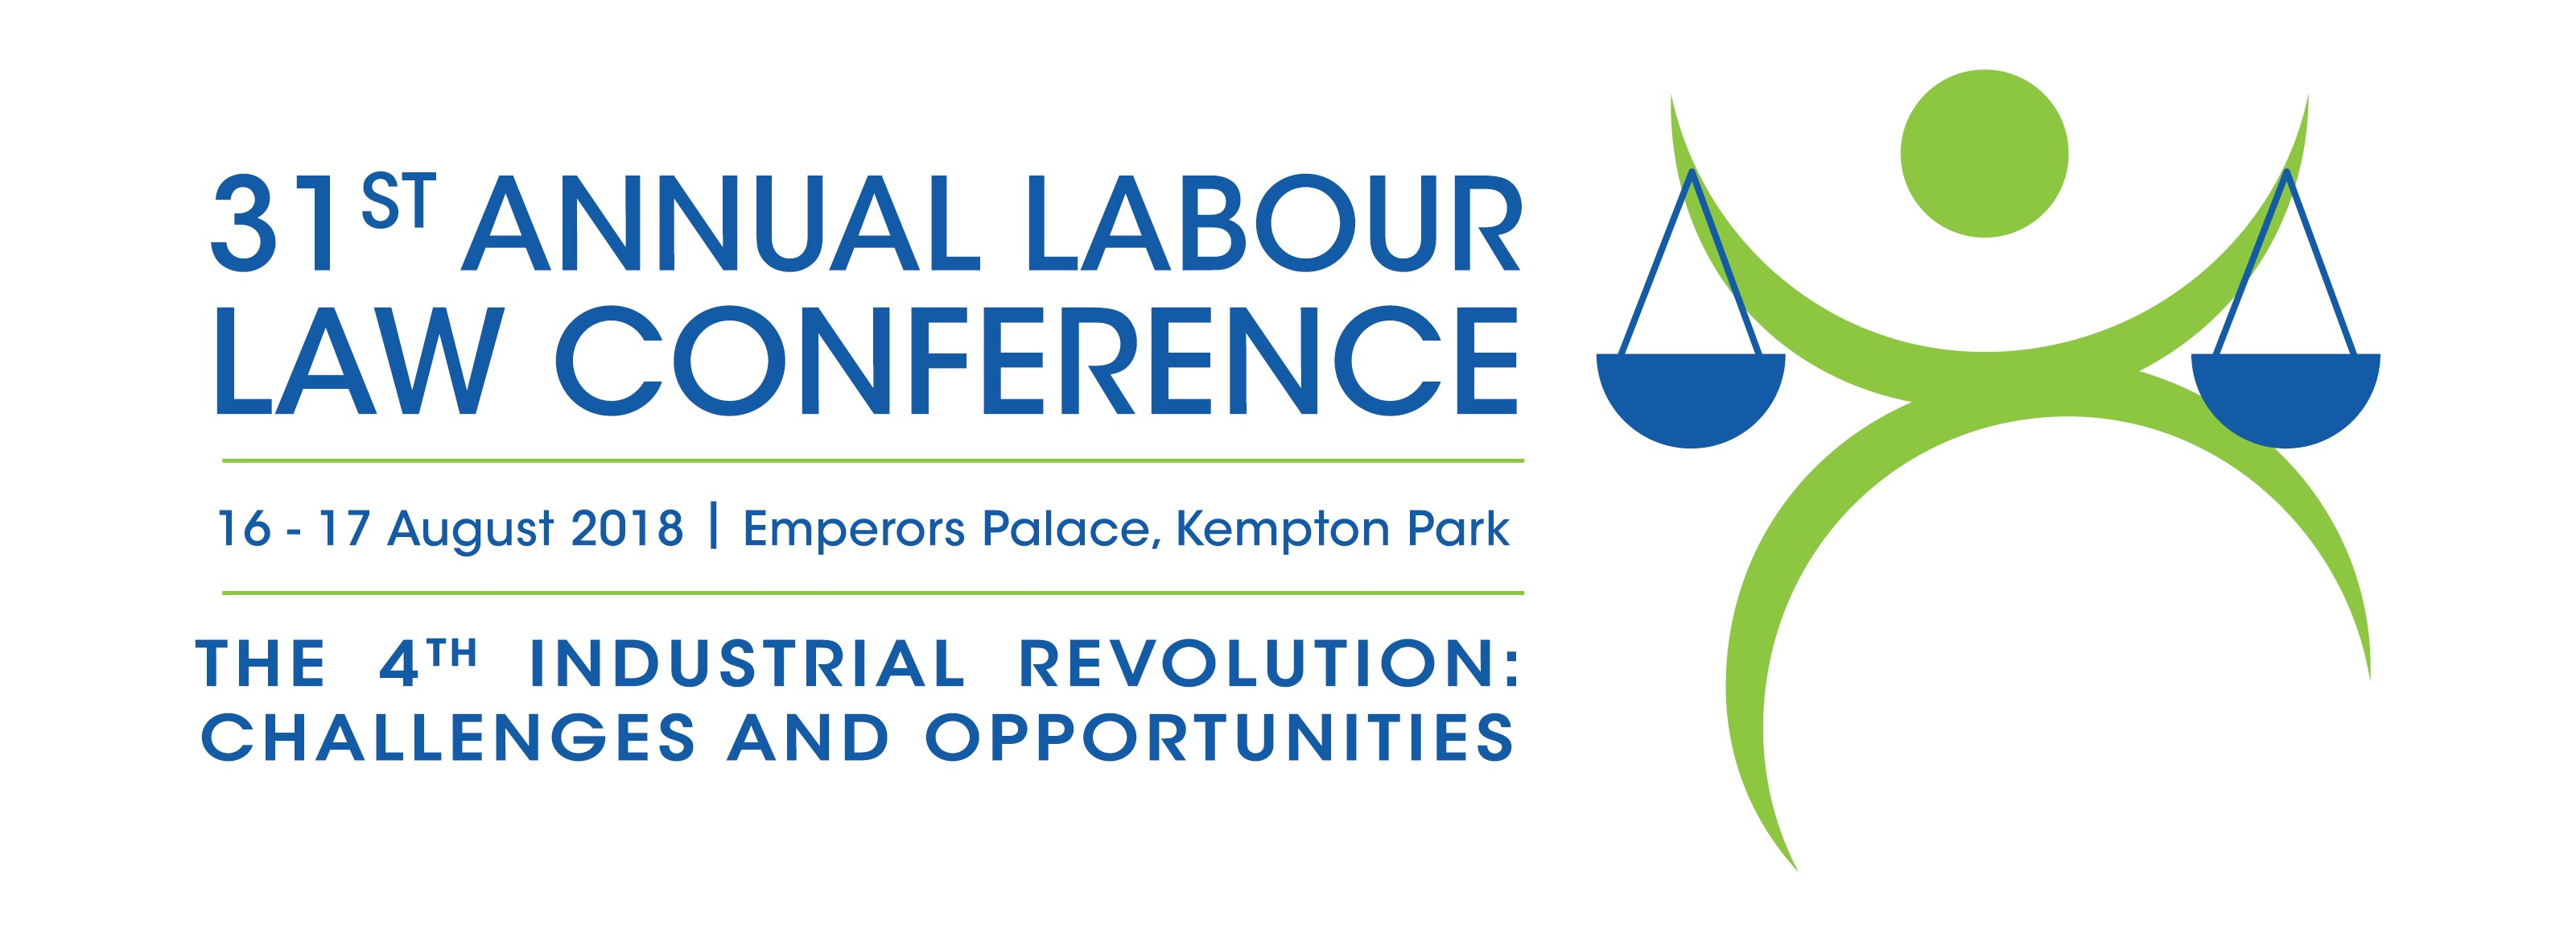 31st Annual Labour Law Conference 2018 Emperor's Palace, Kempton Park